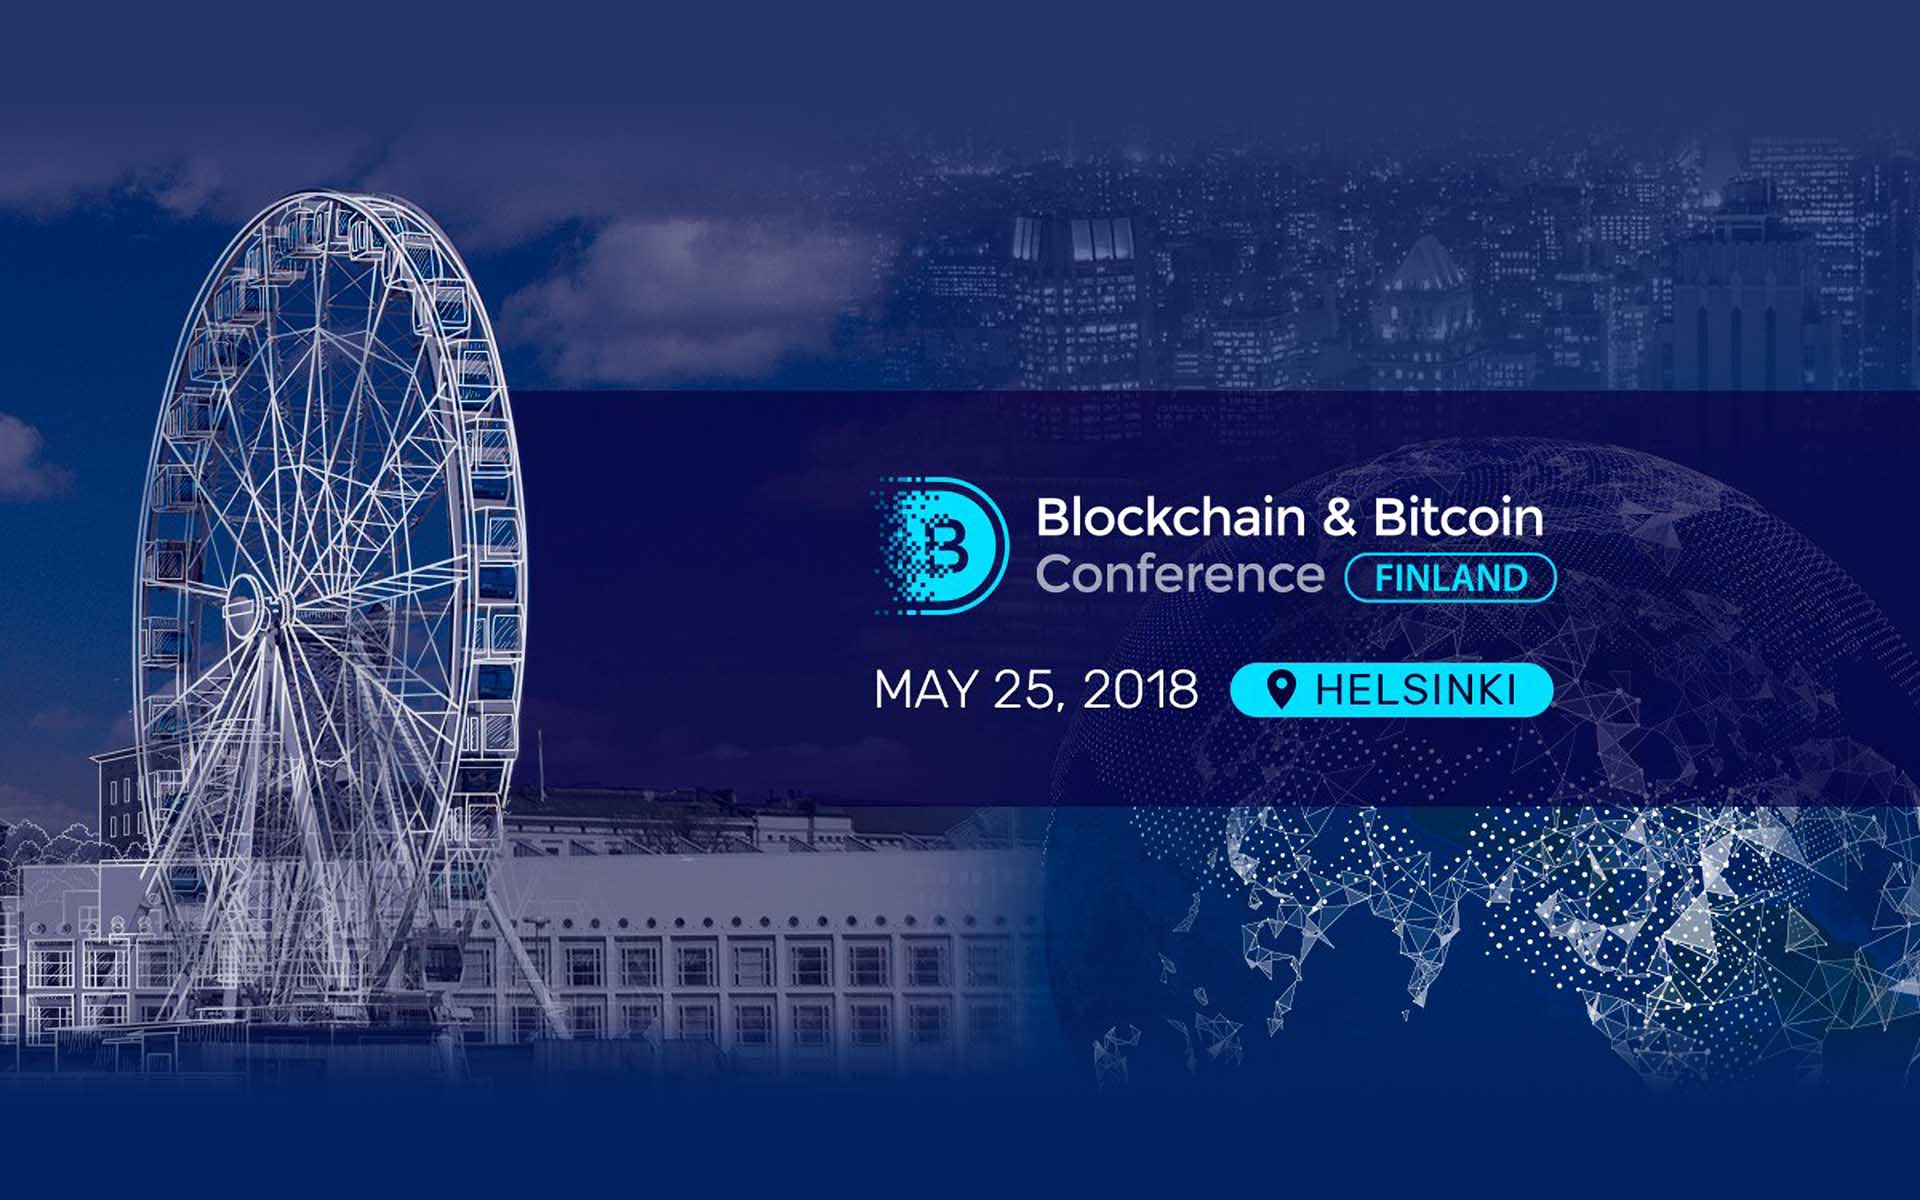 Legislative Regulation of Blockchain and Cryptocurrency: Important Issue Will be Discussed at Blockchain & Bitcoin Conference Finland